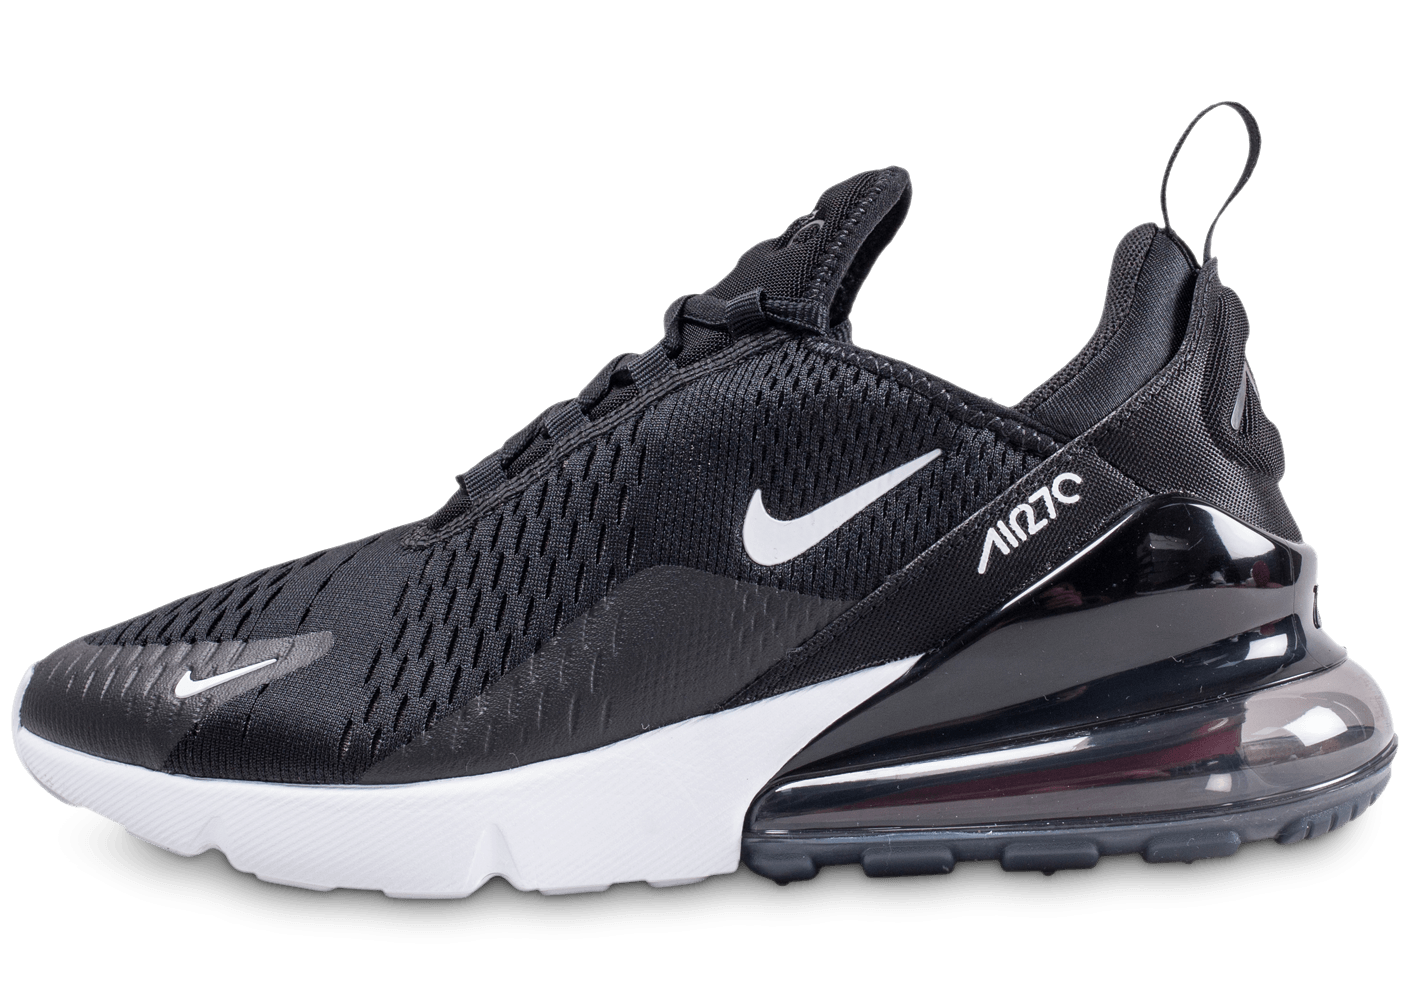 Nike Air Max 270 Noire Et Blanche Chaussures Homme